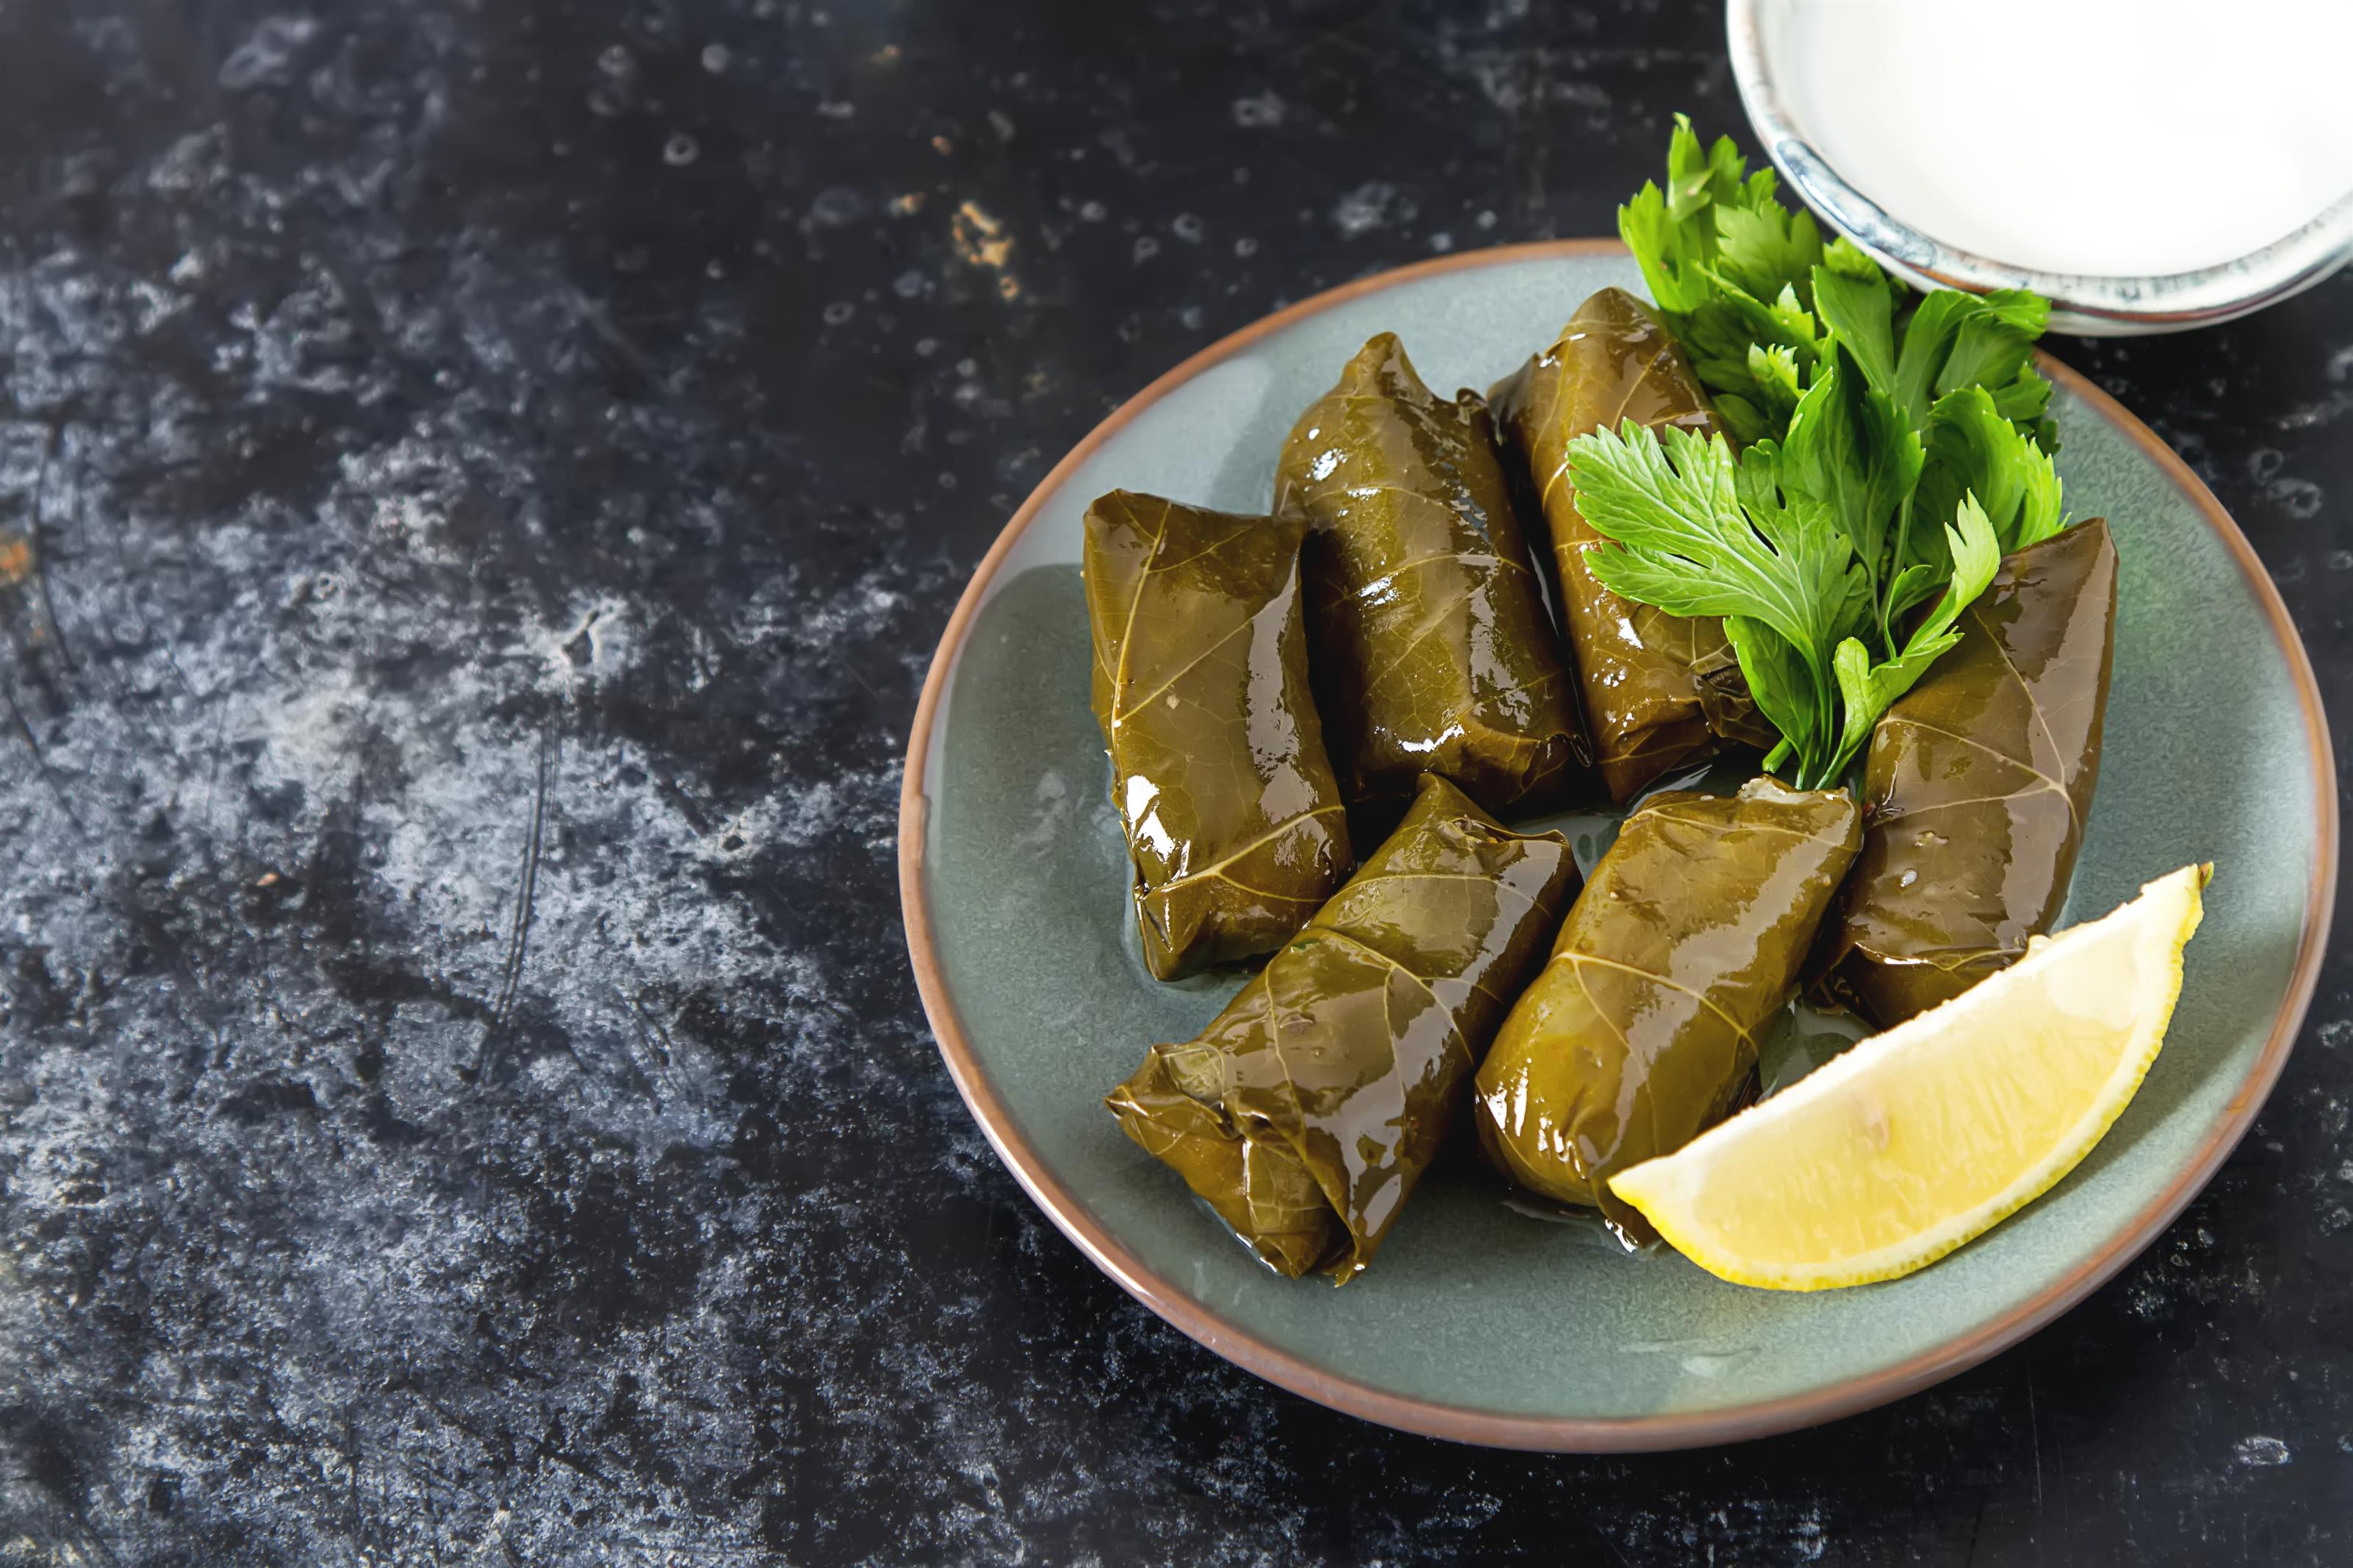 stuffed grape leaves on a plate with herbs and lemon slice